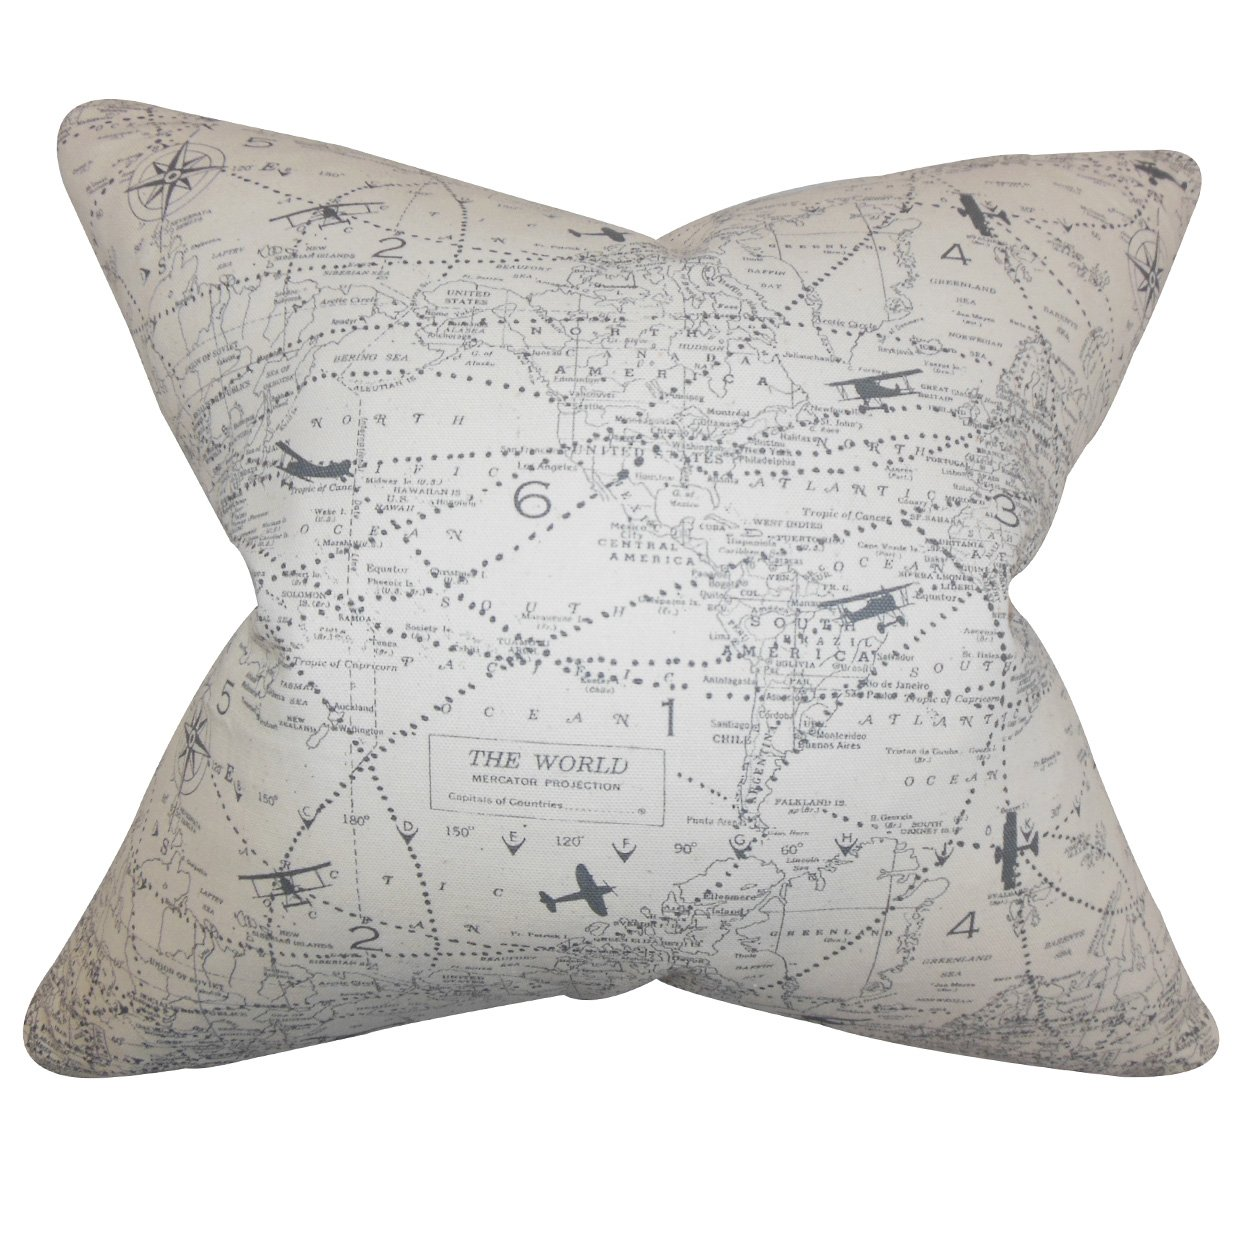 Rikki Knight 16 x 16 inch Person is Awesome #1 Microfiber Throw Pillow Cushion Square with Hidden Zipper -Printed in The USA Insert Included